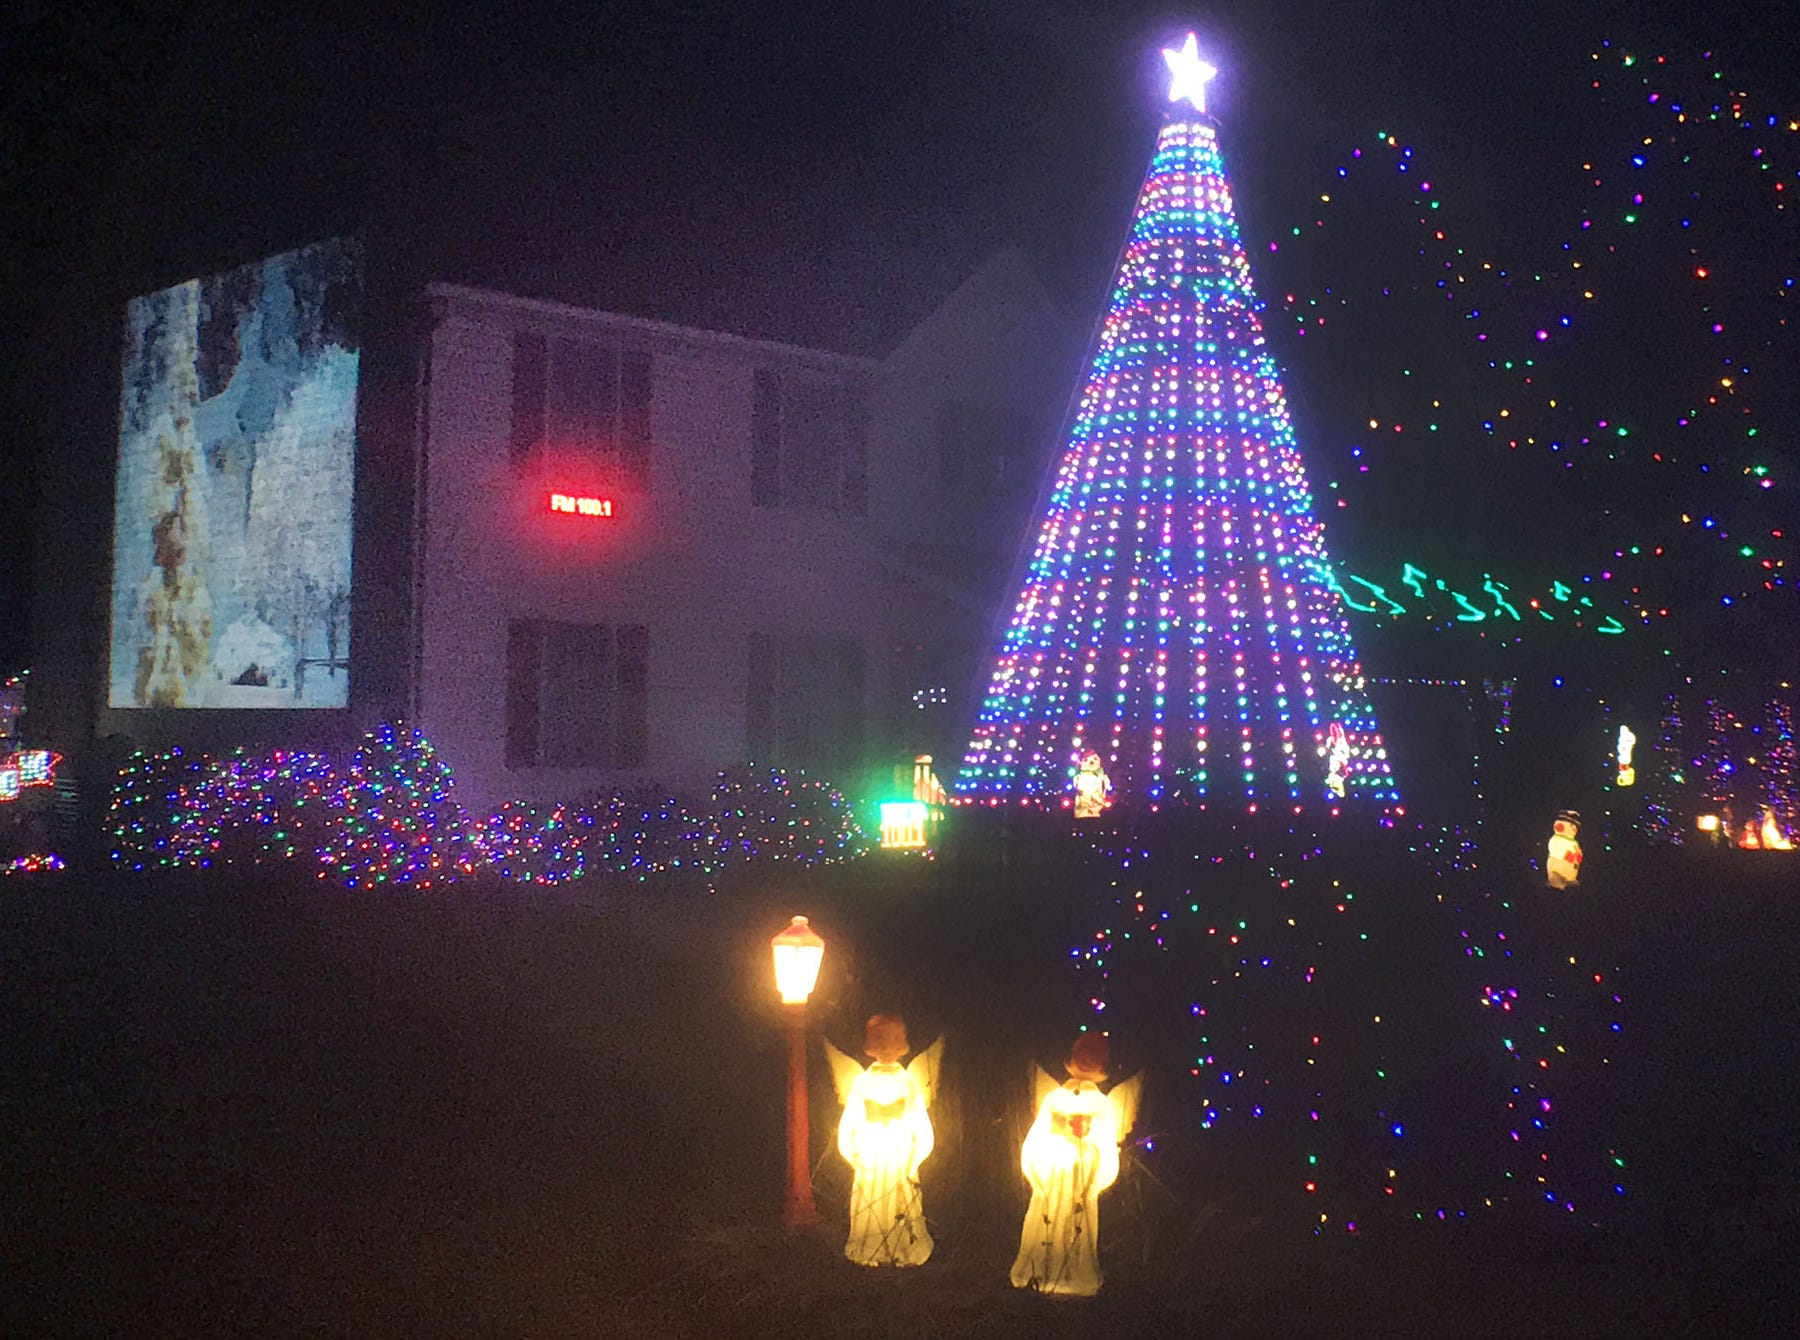 A synchronized Christmas display lights the night in the 200 block of Chestnut Drive, Shippensburg.